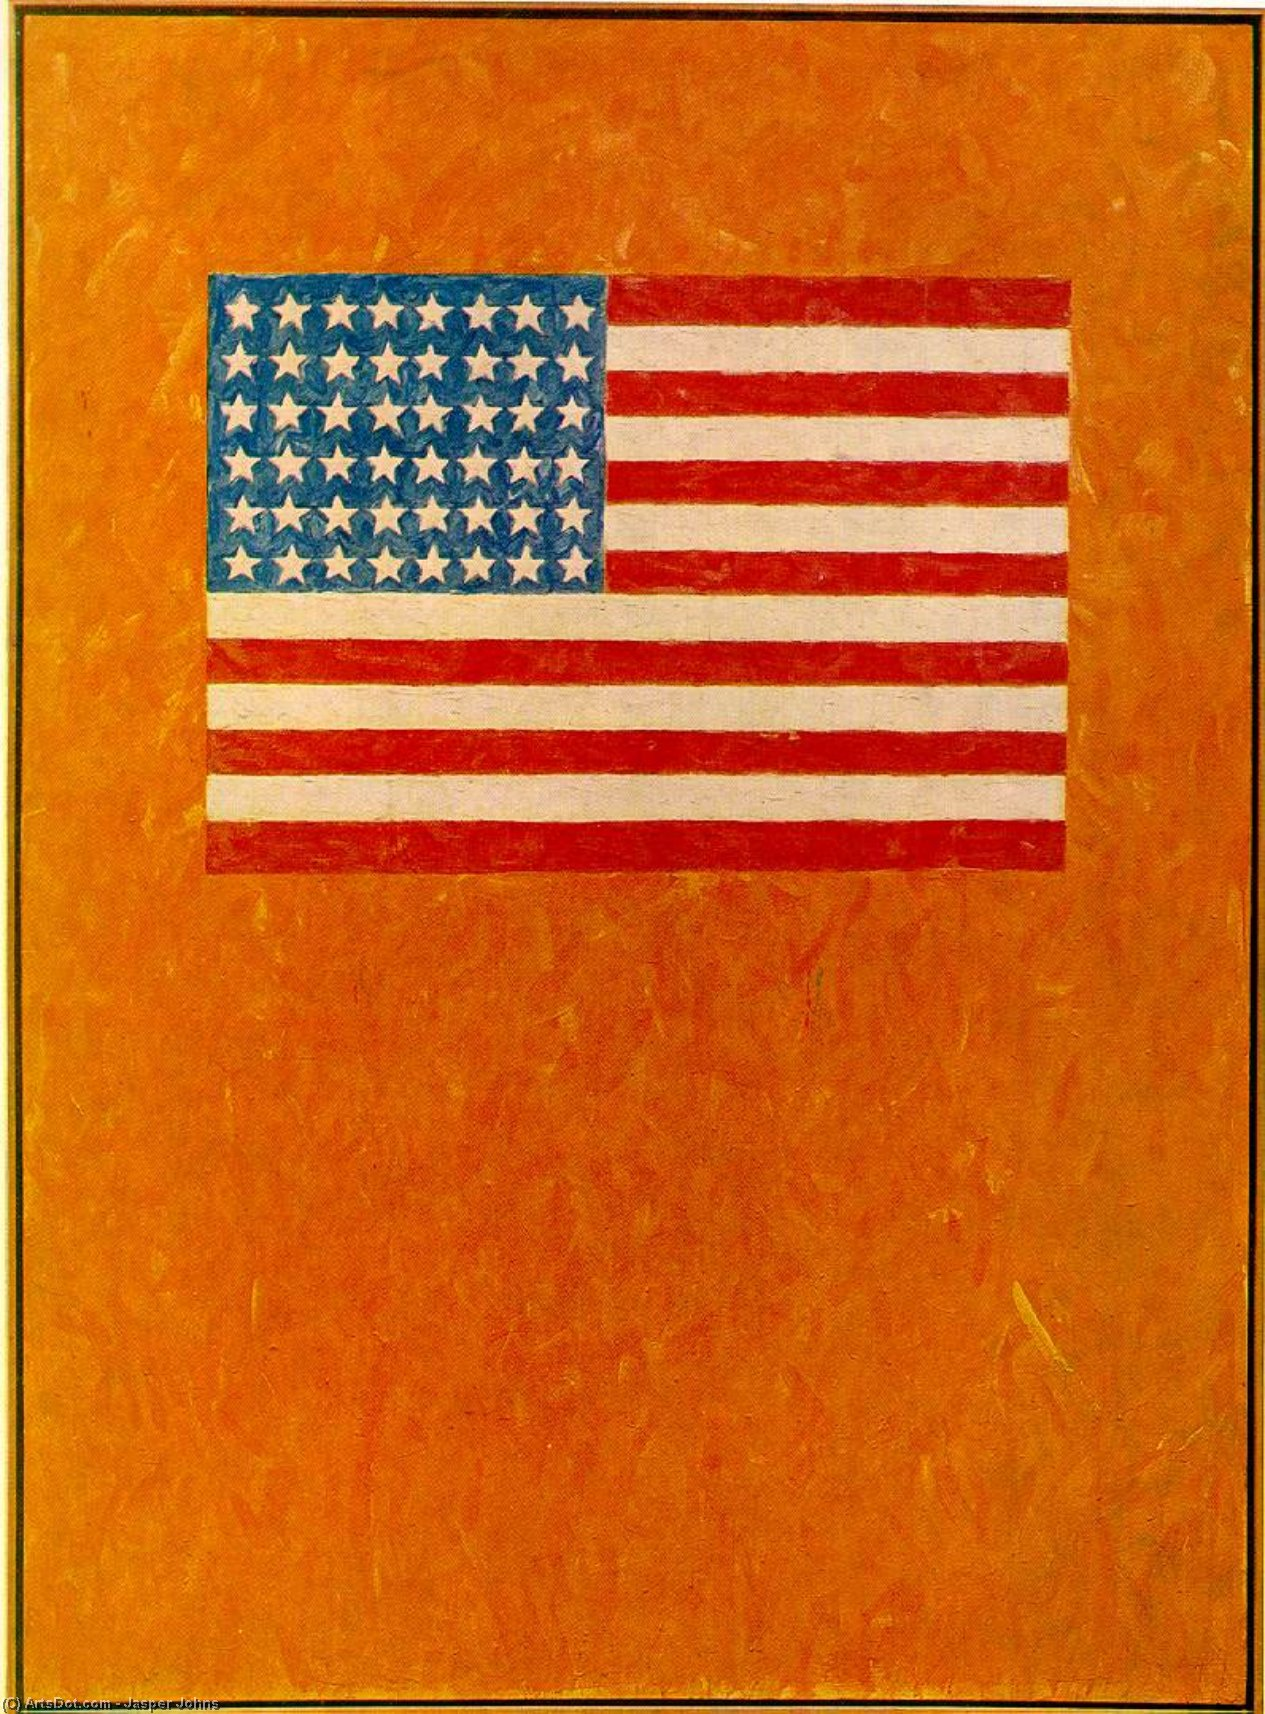 bandera on orange campo, óleo sobre lienzo de Jasper Johns